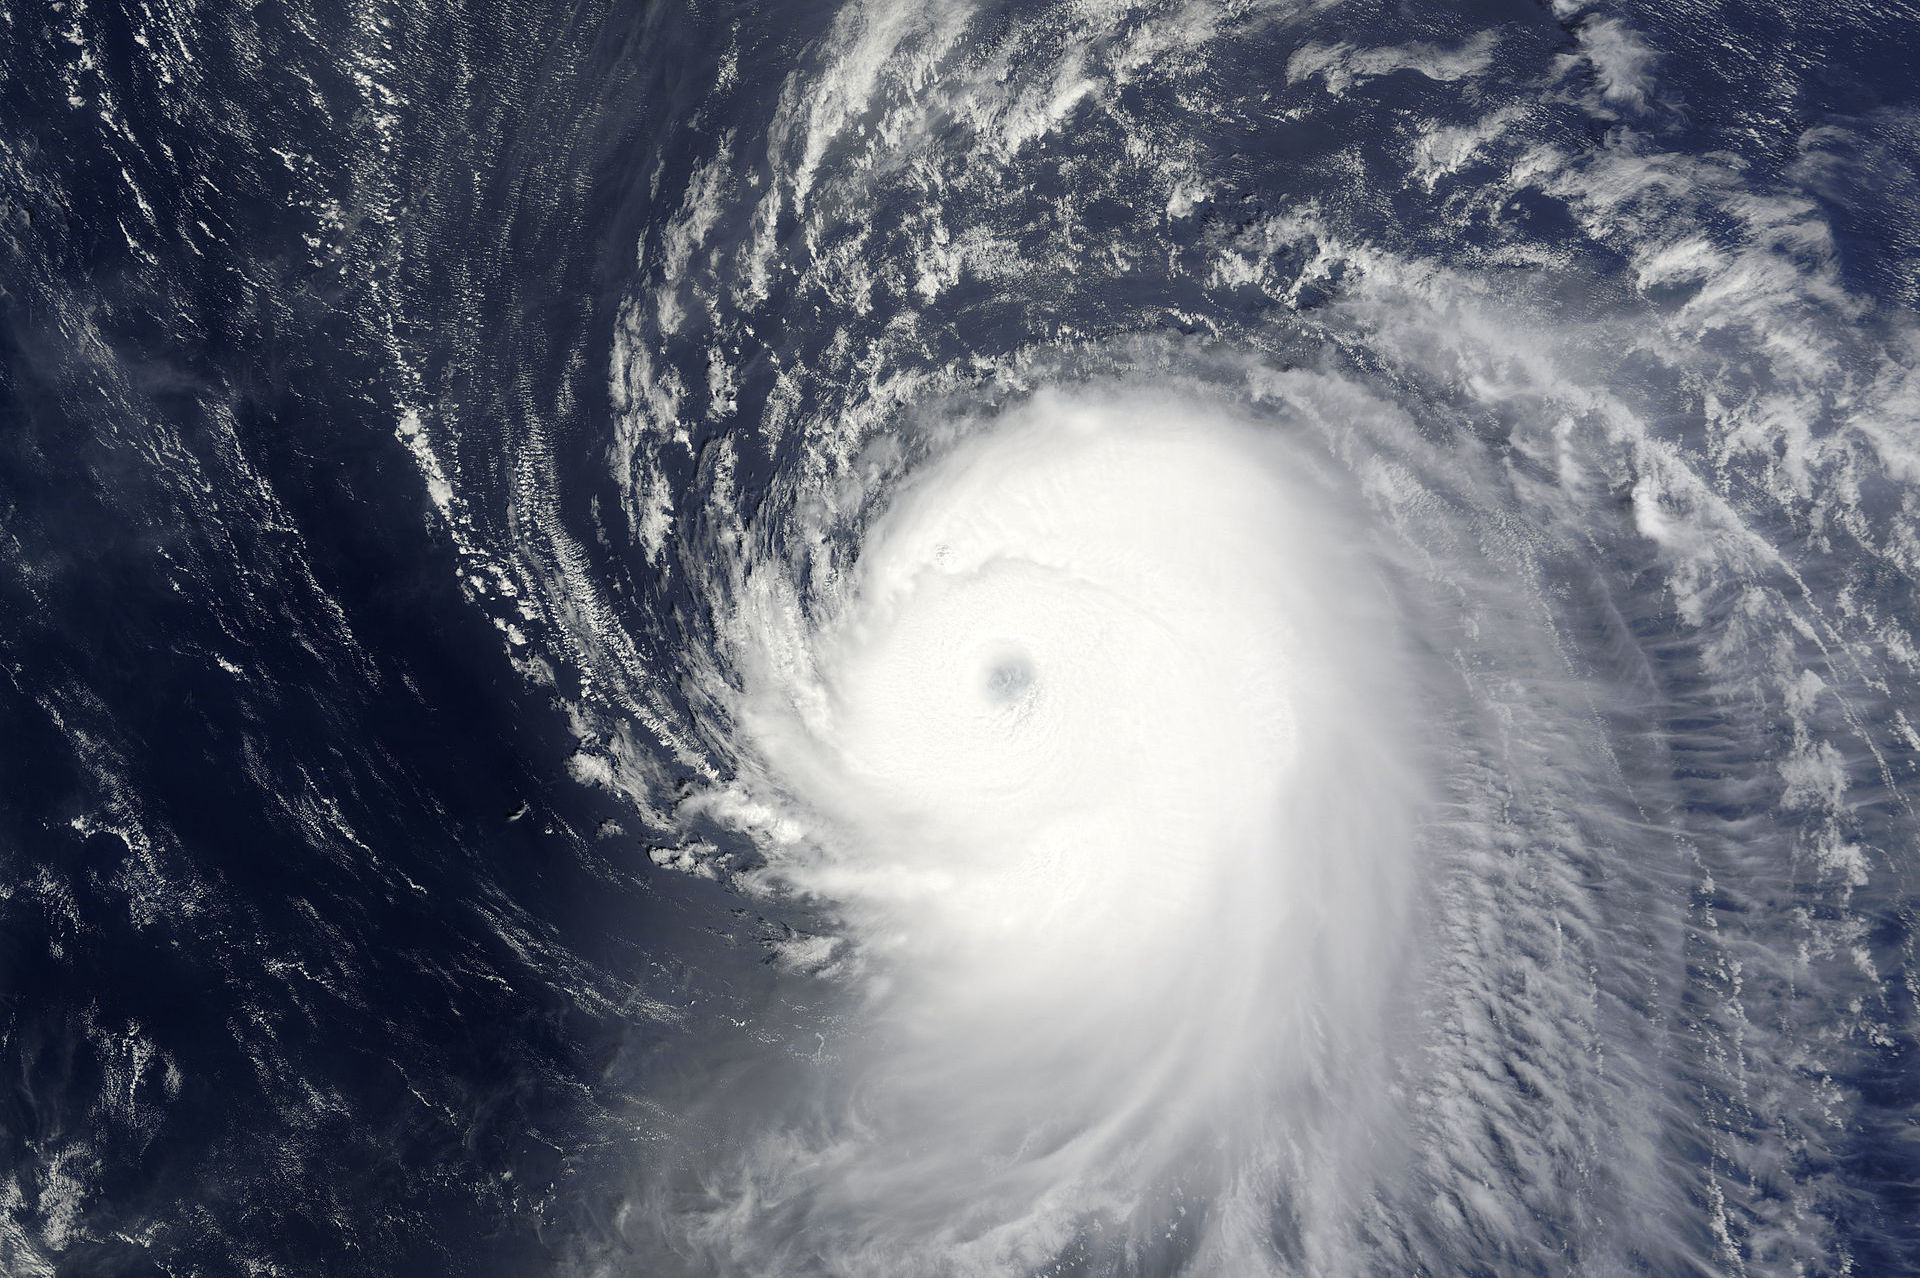 Hurricane ike off the lesser antilles nuzww7